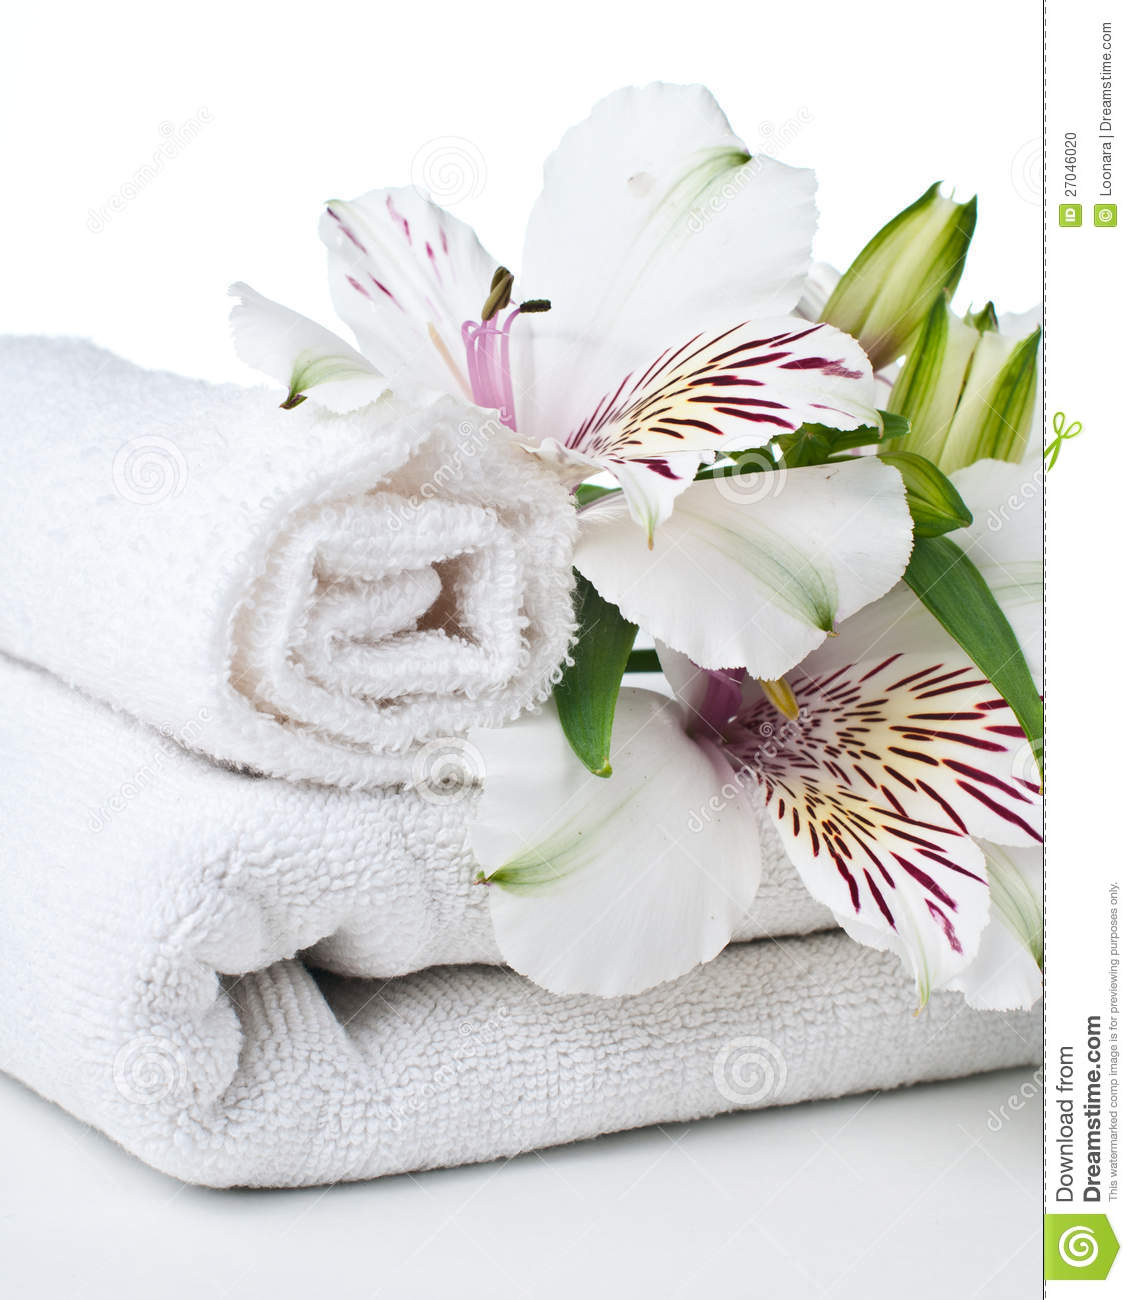 Resources for spa white towel and flower stock photo image of download resources for spa white towel and flower stock photo image of bathroom izmirmasajfo